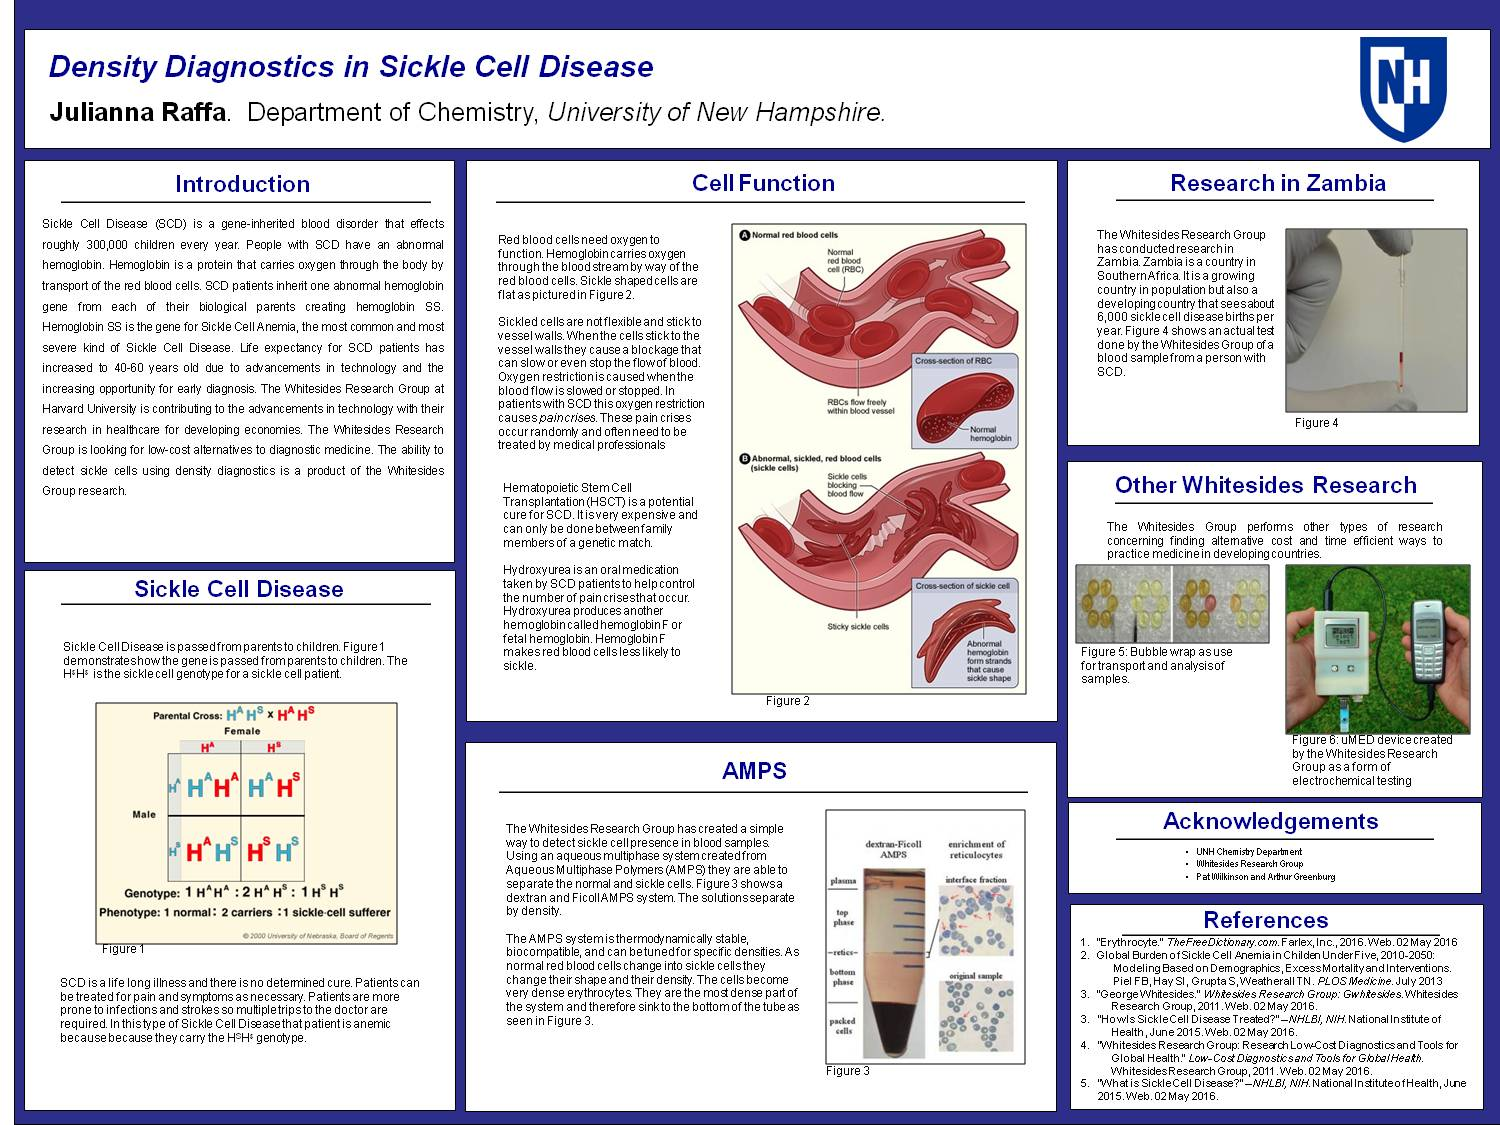 Density Diagnostics In Sickle Cell Disease by jdn87